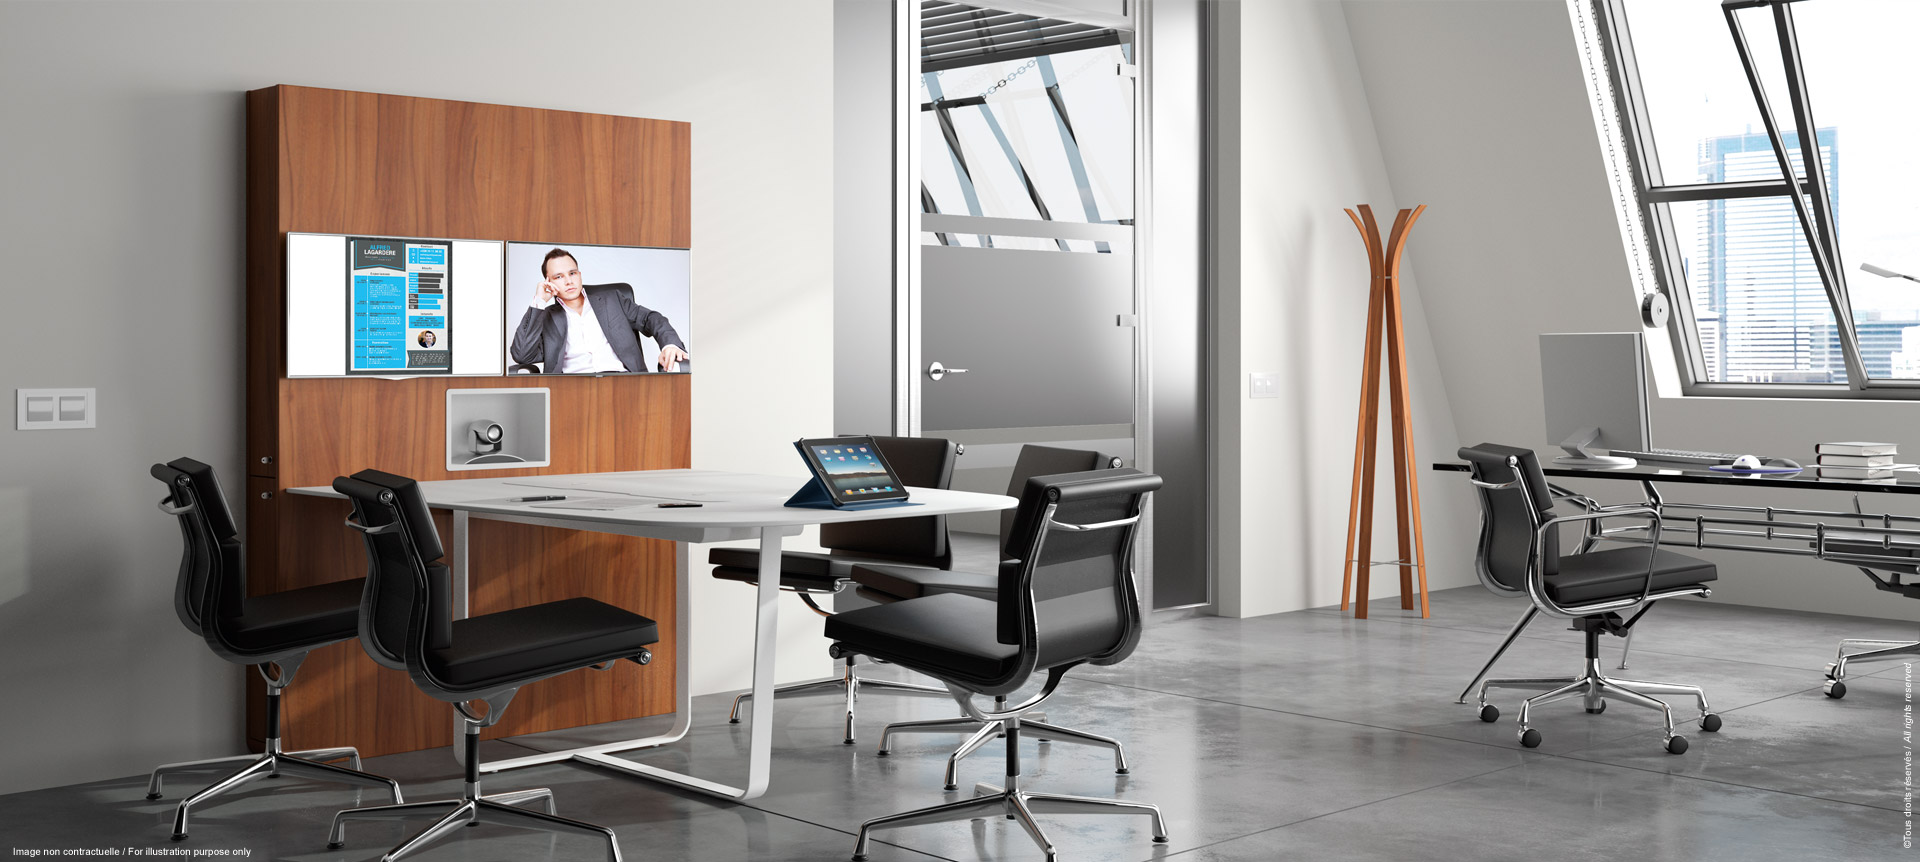 WEMEET CONFERENCE - Meeting table for coworking and videoconference